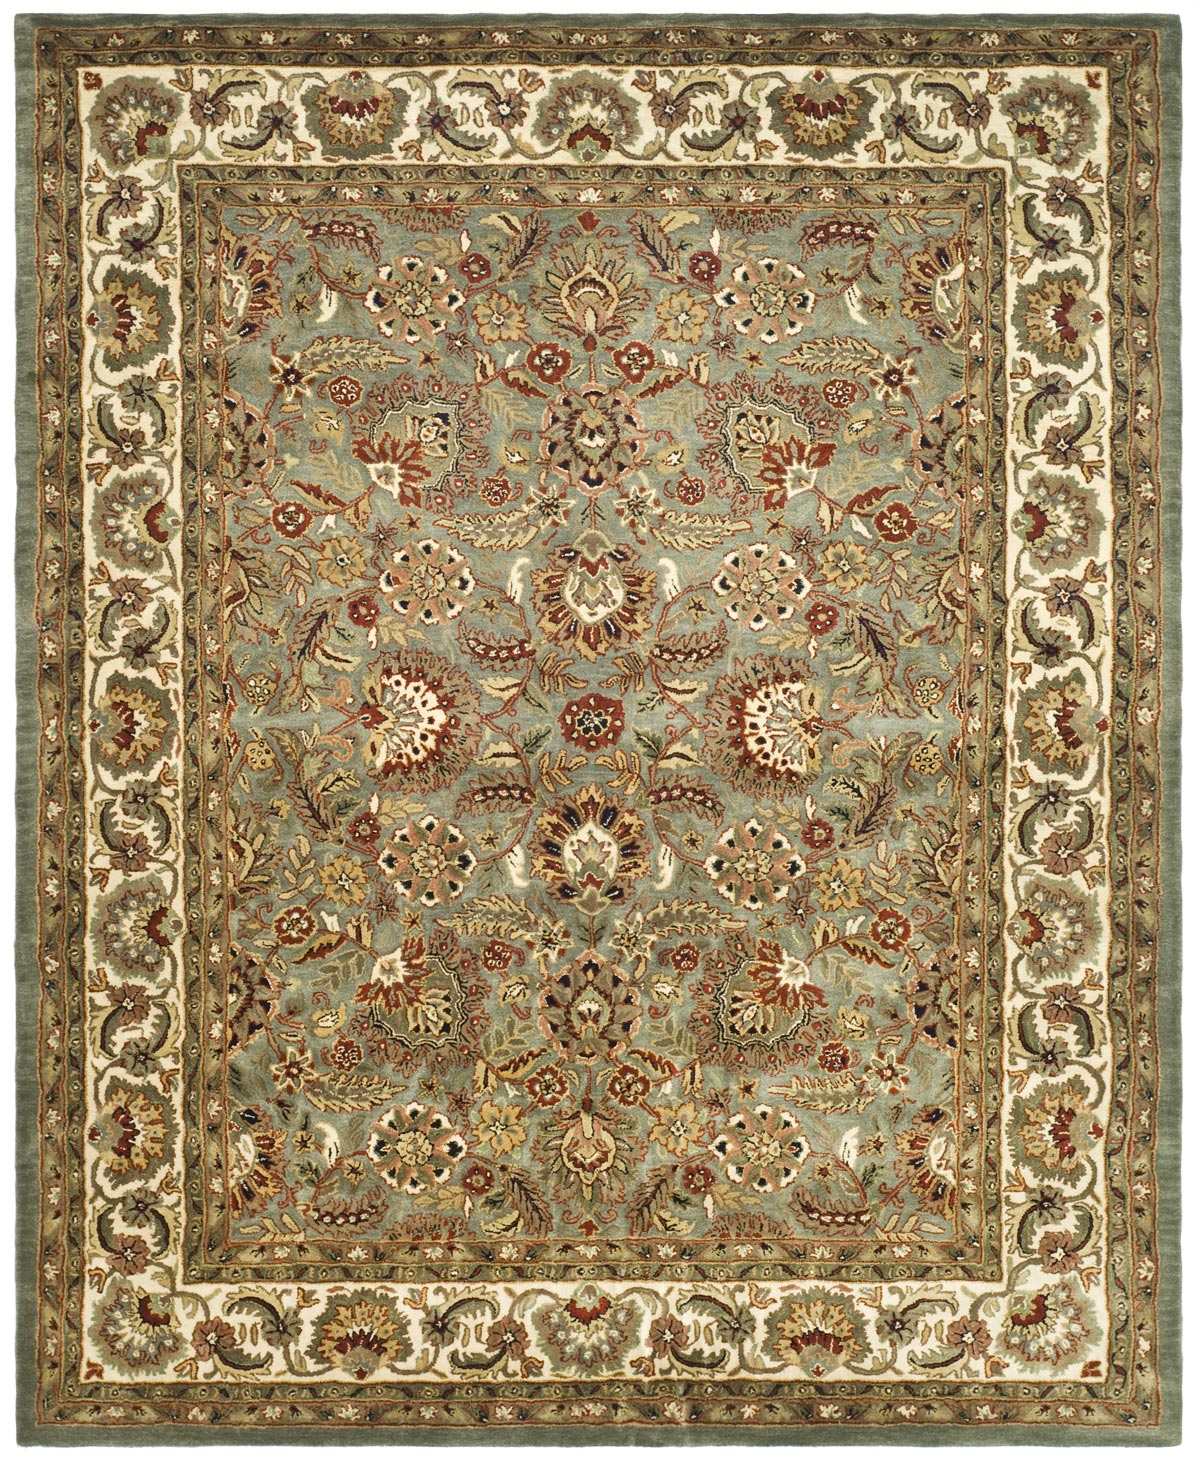 Rug Cl359b Classic Area Rugs By Safavieh